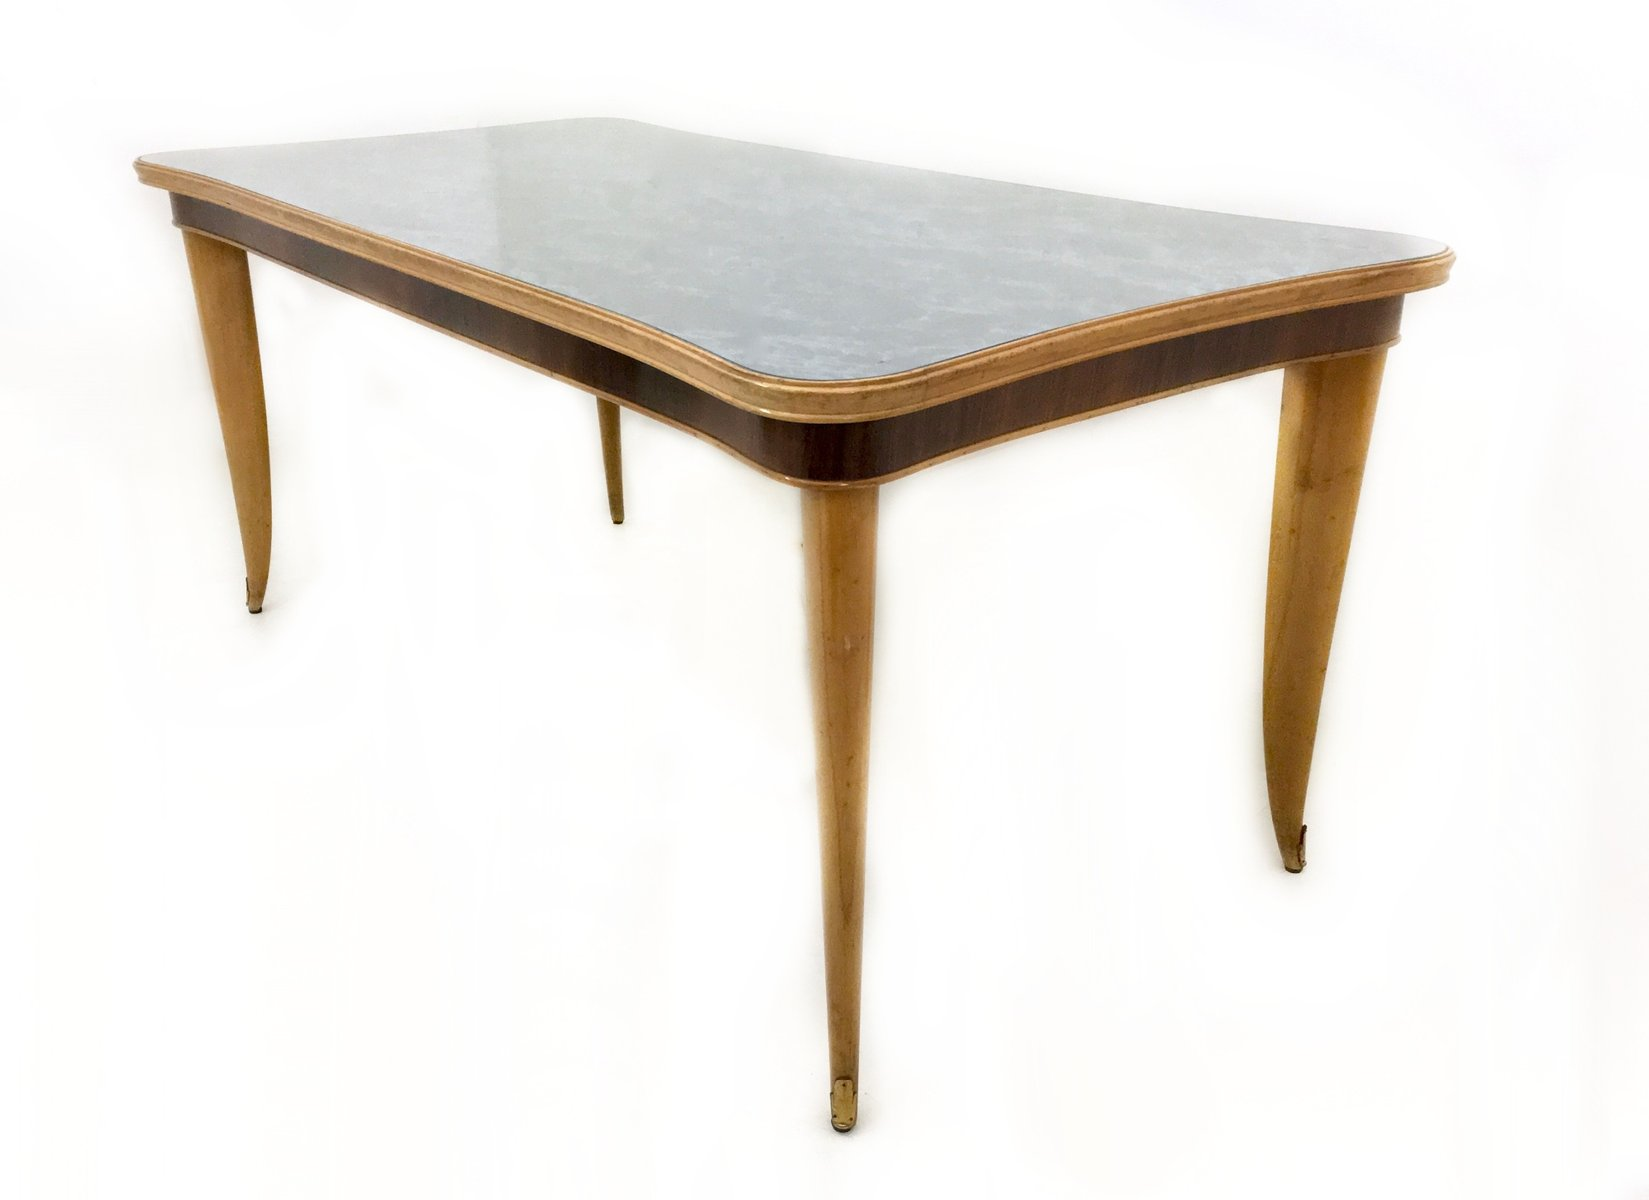 Japanese Dining Table For Sale Italian Beech And Maple Dining Table 1950s For Sale At Pamono